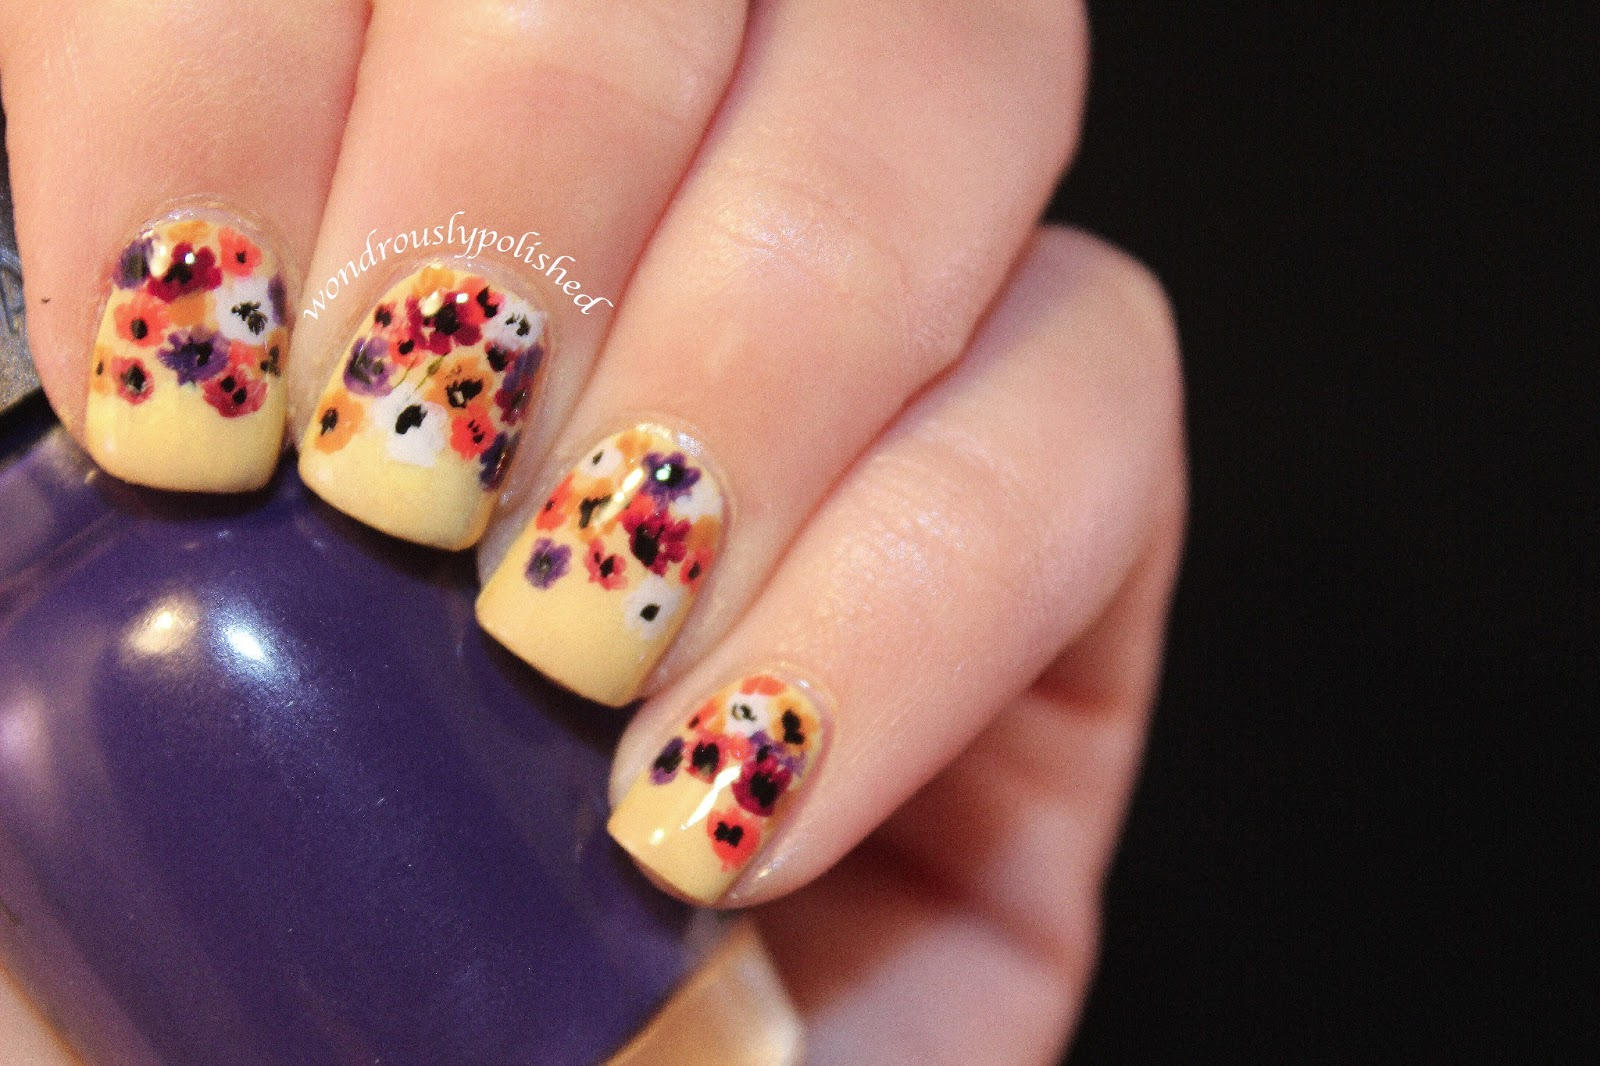 Wondrously Polished February Nail Art Challenge Day 2 Flowers